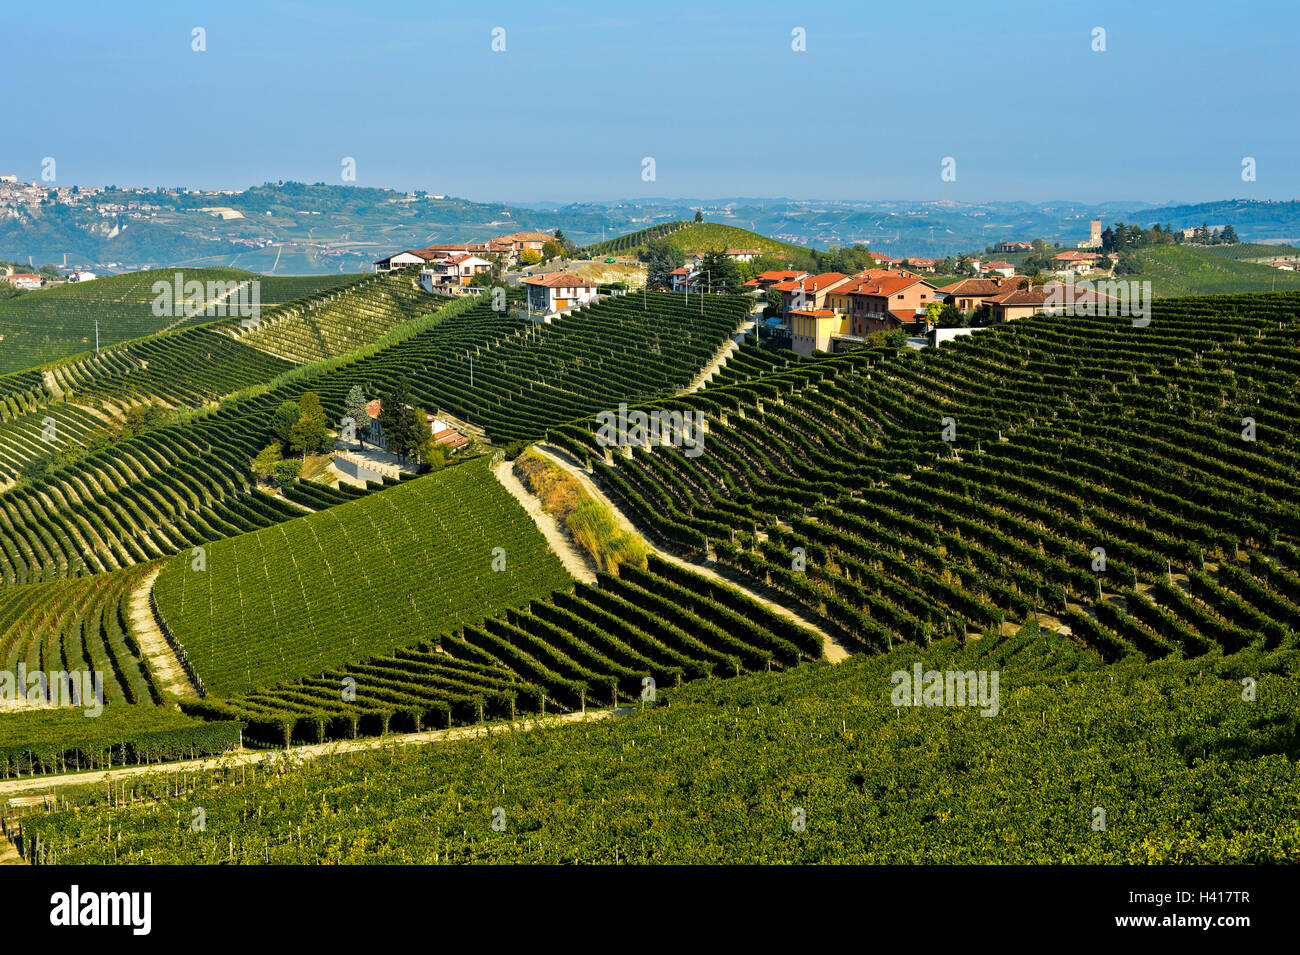 Vineyards of Nebbiolo grapes for Barbaresco red wine in the producing area Treiso-Marcarini, Treiso, Piedmont, Italy - Stock Image